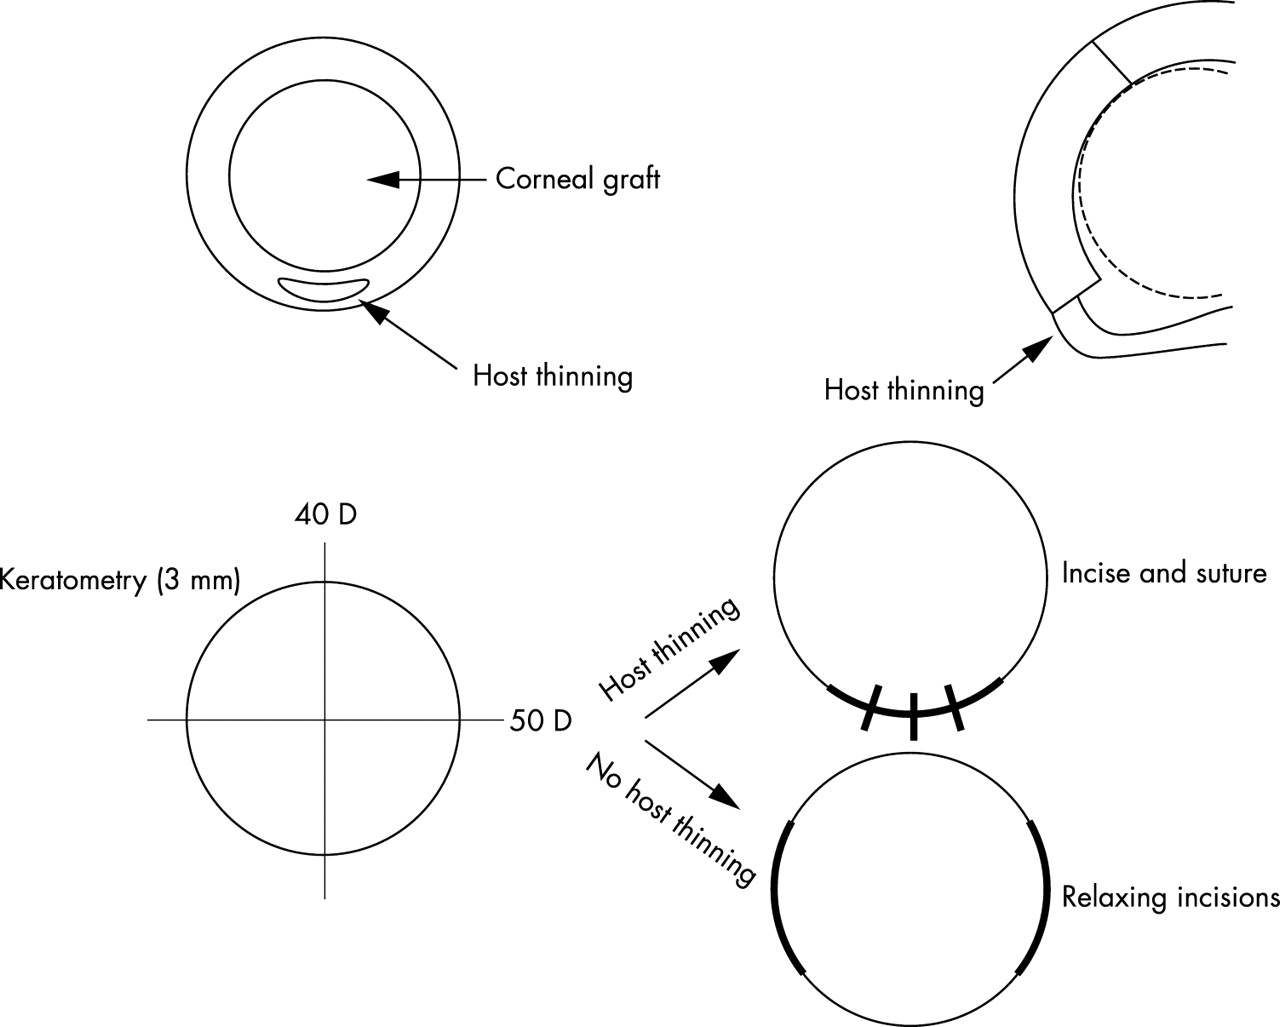 Late onset post-keratoplasty astigmatism in patients with ... on thermometer diagram, hyperopia diagram, pupil diagram, lens diagram, visual field diagram, projector diagram, prism diagram, slit lamp diagram, myopia diagram, astigmatism diagram, glaucoma diagram, conjunctiva diagram, lensometer diagram, cataract diagram, epipen diagram, kinetoscope diagram, cornea diagram, sclera diagram, phoropter diagram, colorimeter diagram,